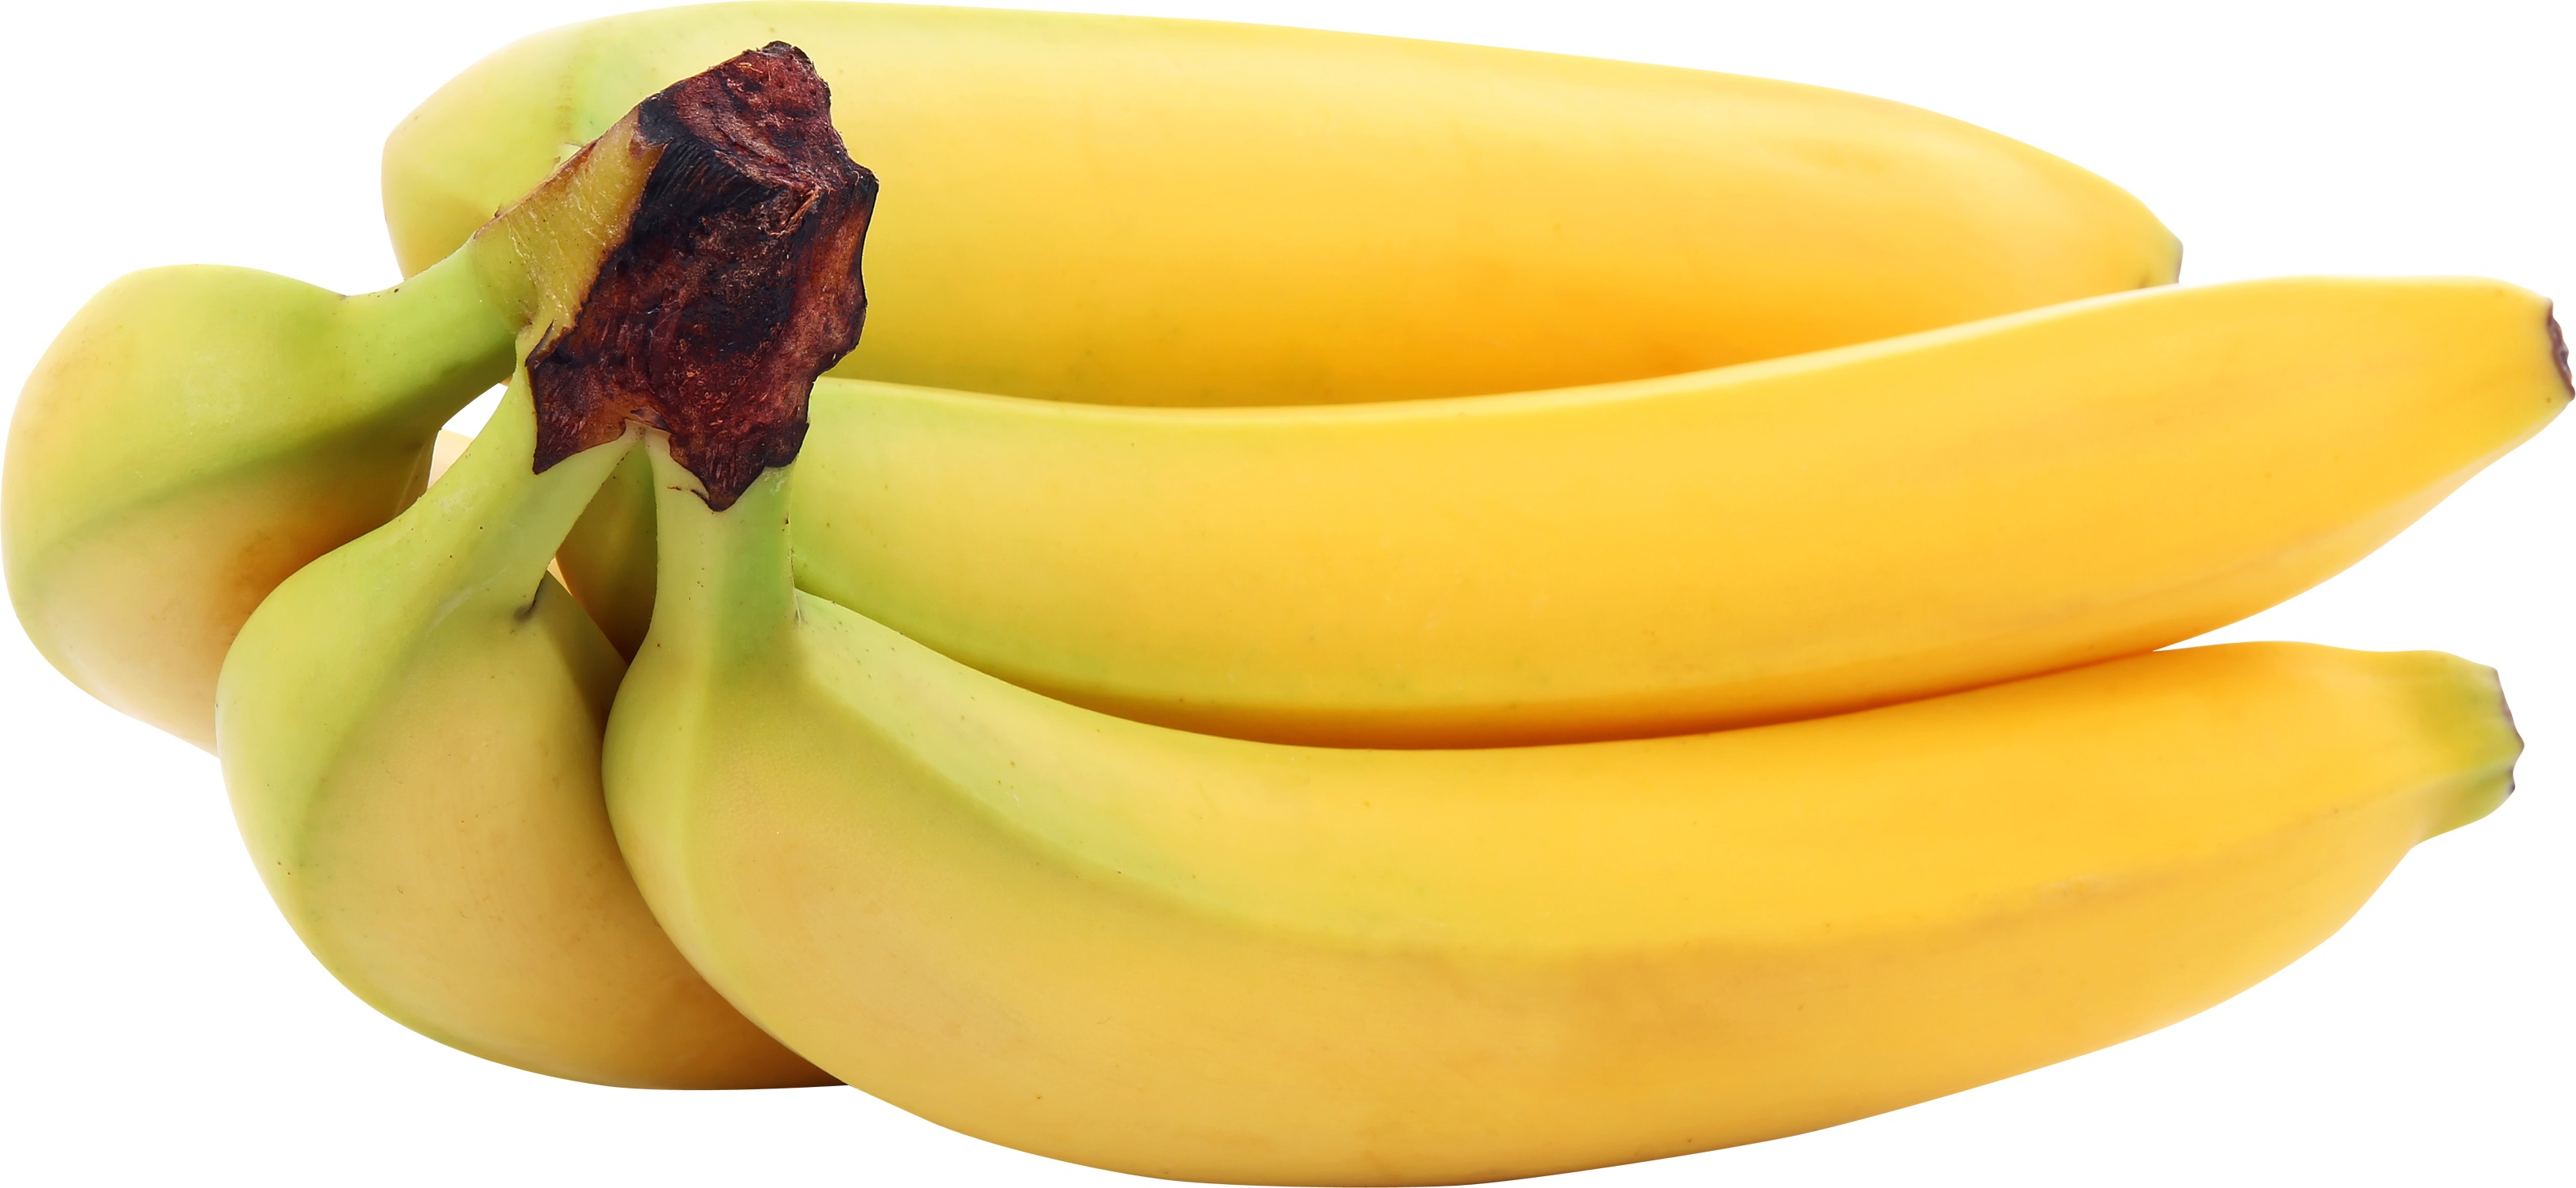 Bananas - What Are The Health Benefits Of Banana